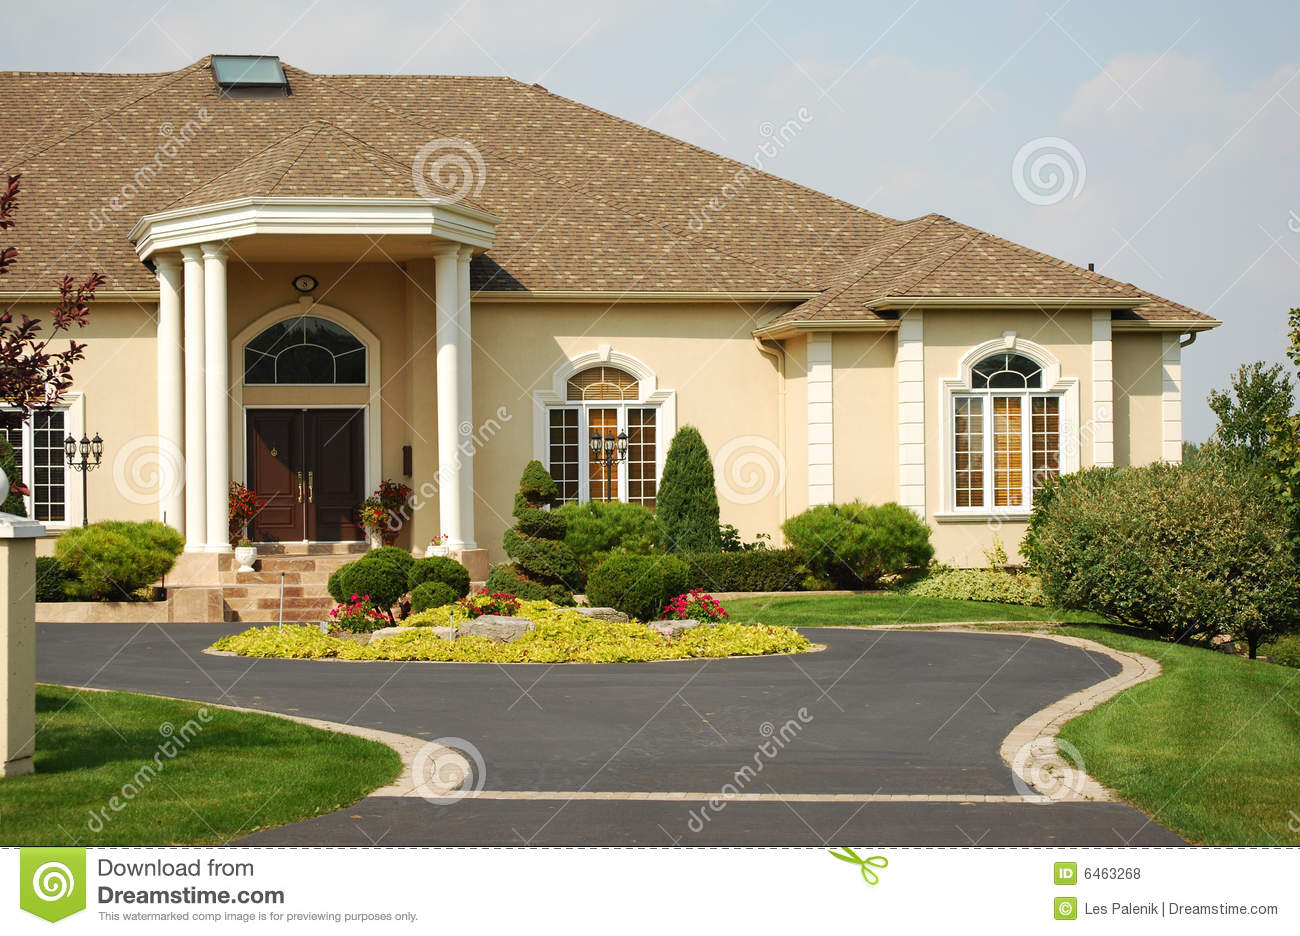 luxury-home-entrance-6463268.jpg